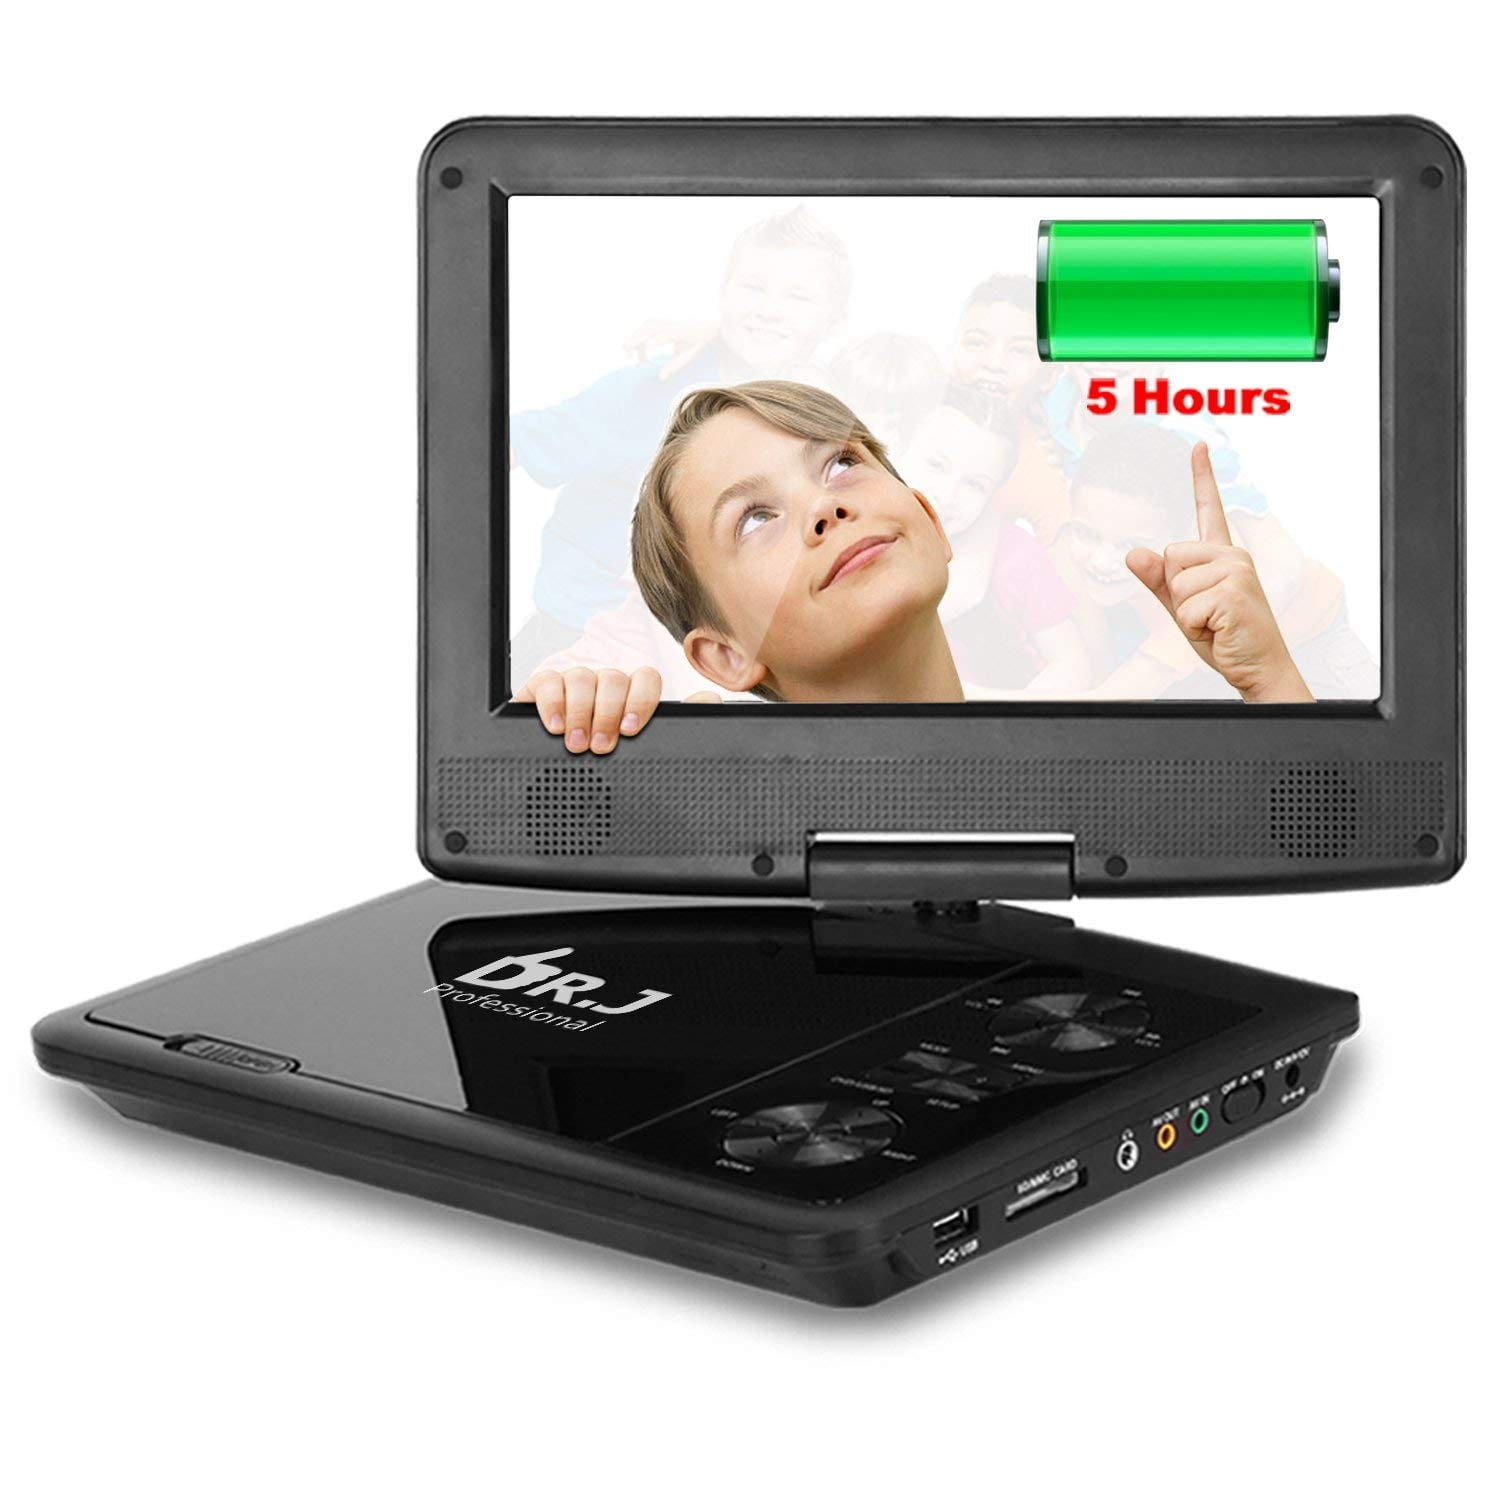 THZY 9.5 inch Screen Portable DVD Player With 270-Degree Swivel Screen, USB SD Card Reader and Built-In Rechargeable Battery